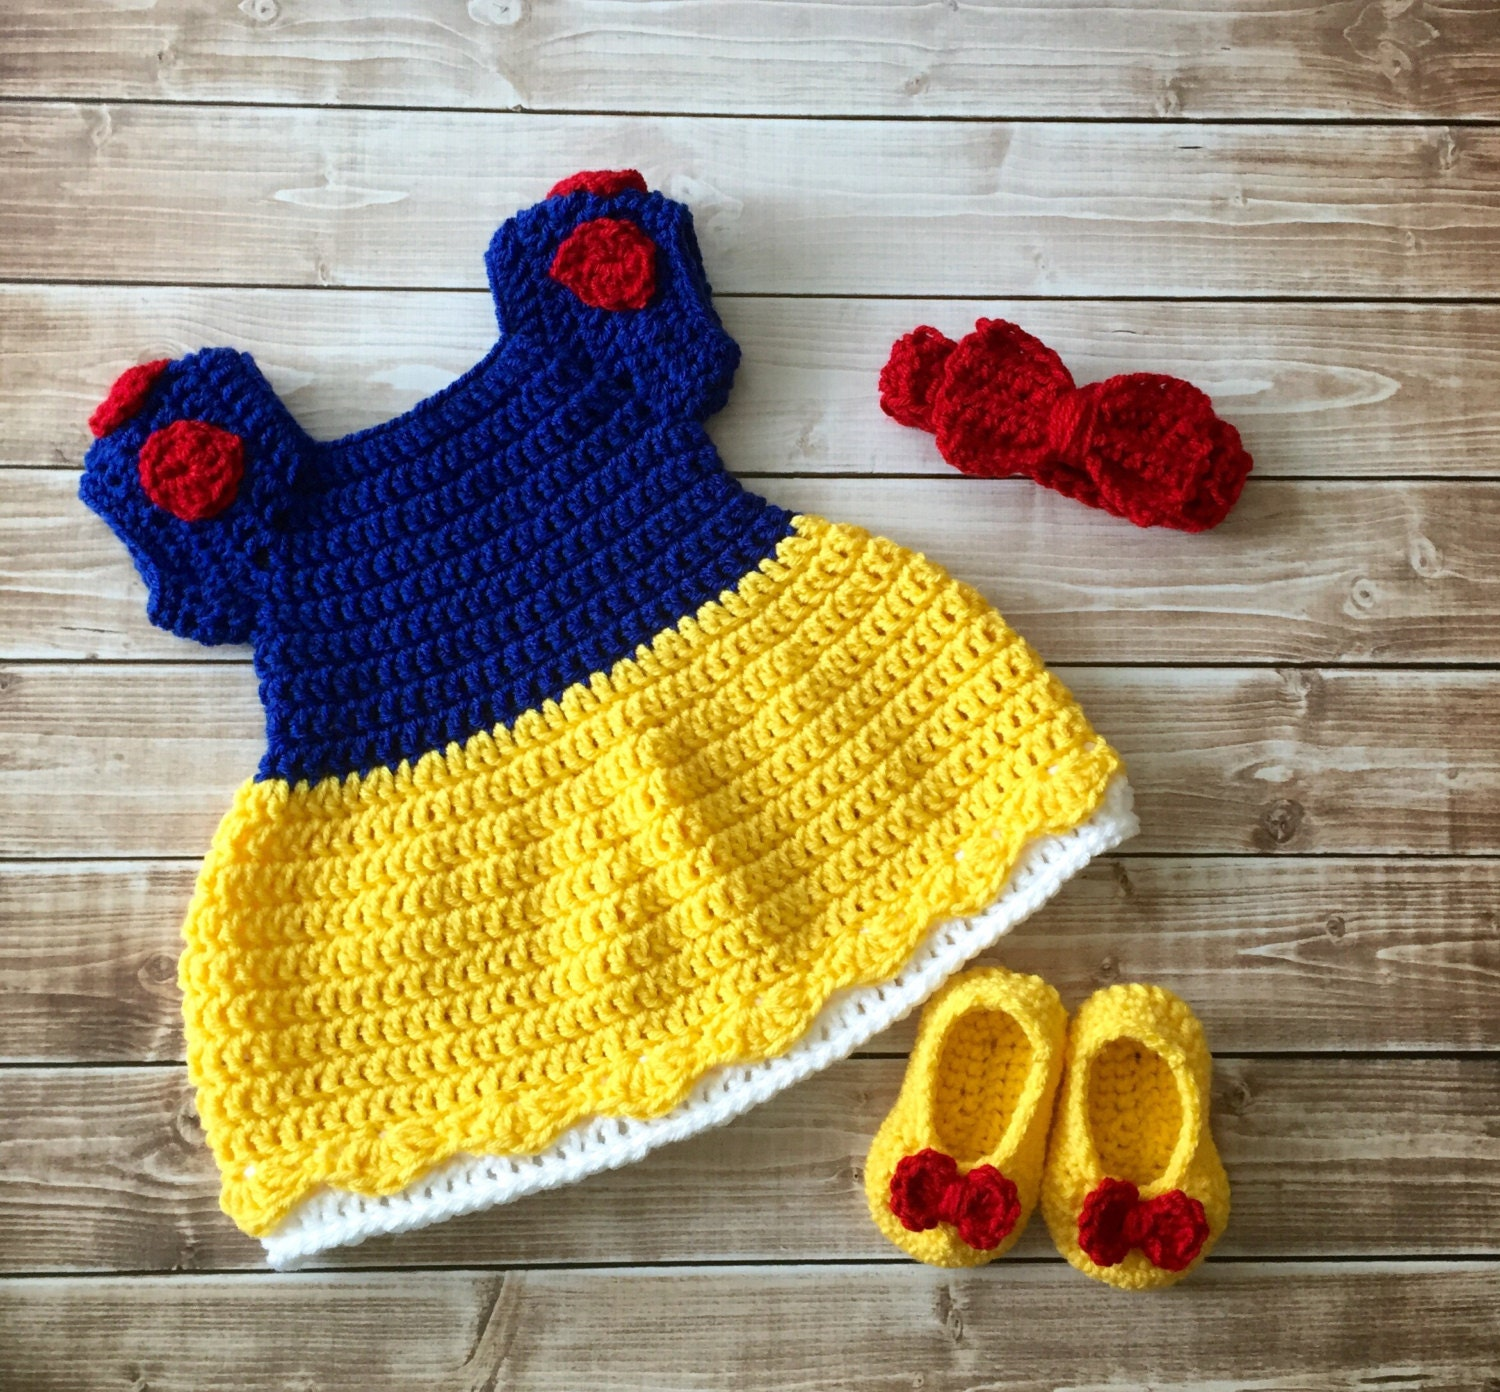 Free Crochet Baby Wig Hat Pattern : Princess Snow White Inspired Costume/Crochet Princess Snow